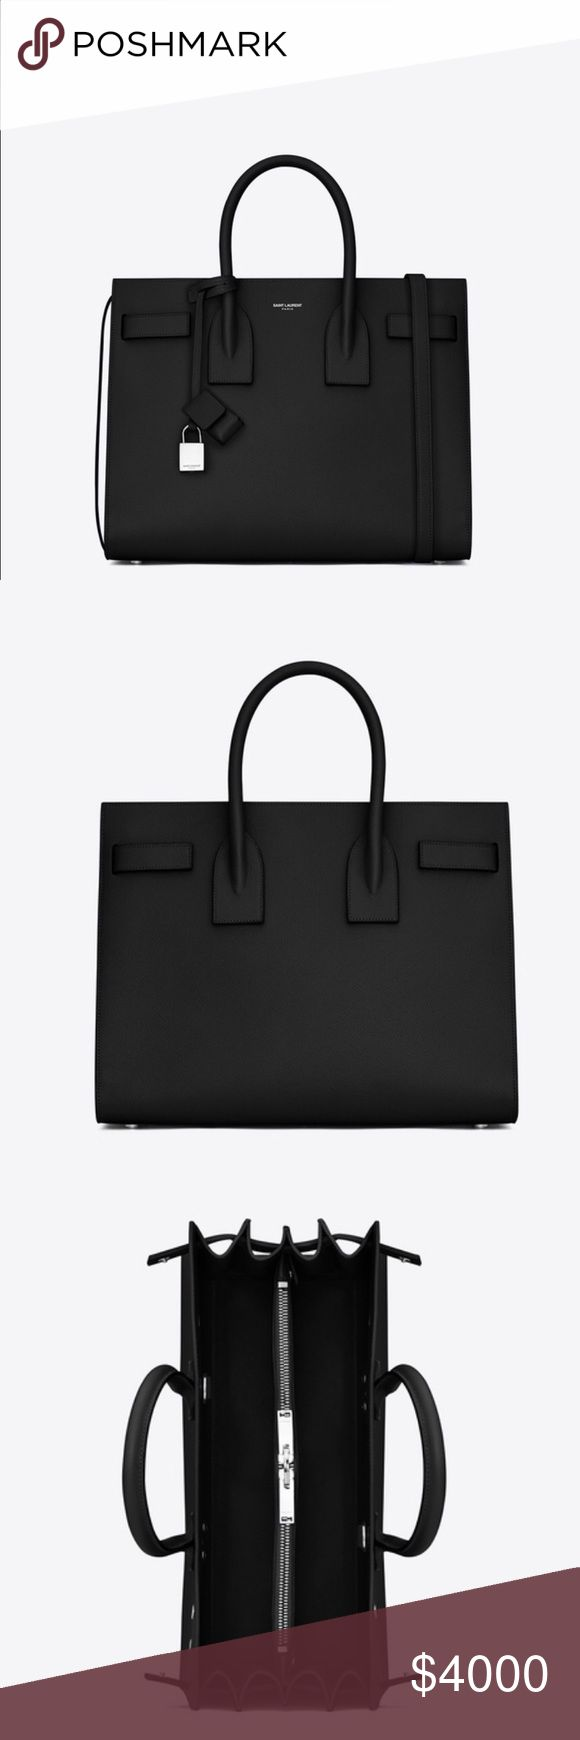 BRAND NEW YSL ST LAURENT HANDBAG Brand new st Laurent handbag black with white edges. Pictures don't do justice to this beauty!! No trades! Yves Saint Laurent Bags Totes